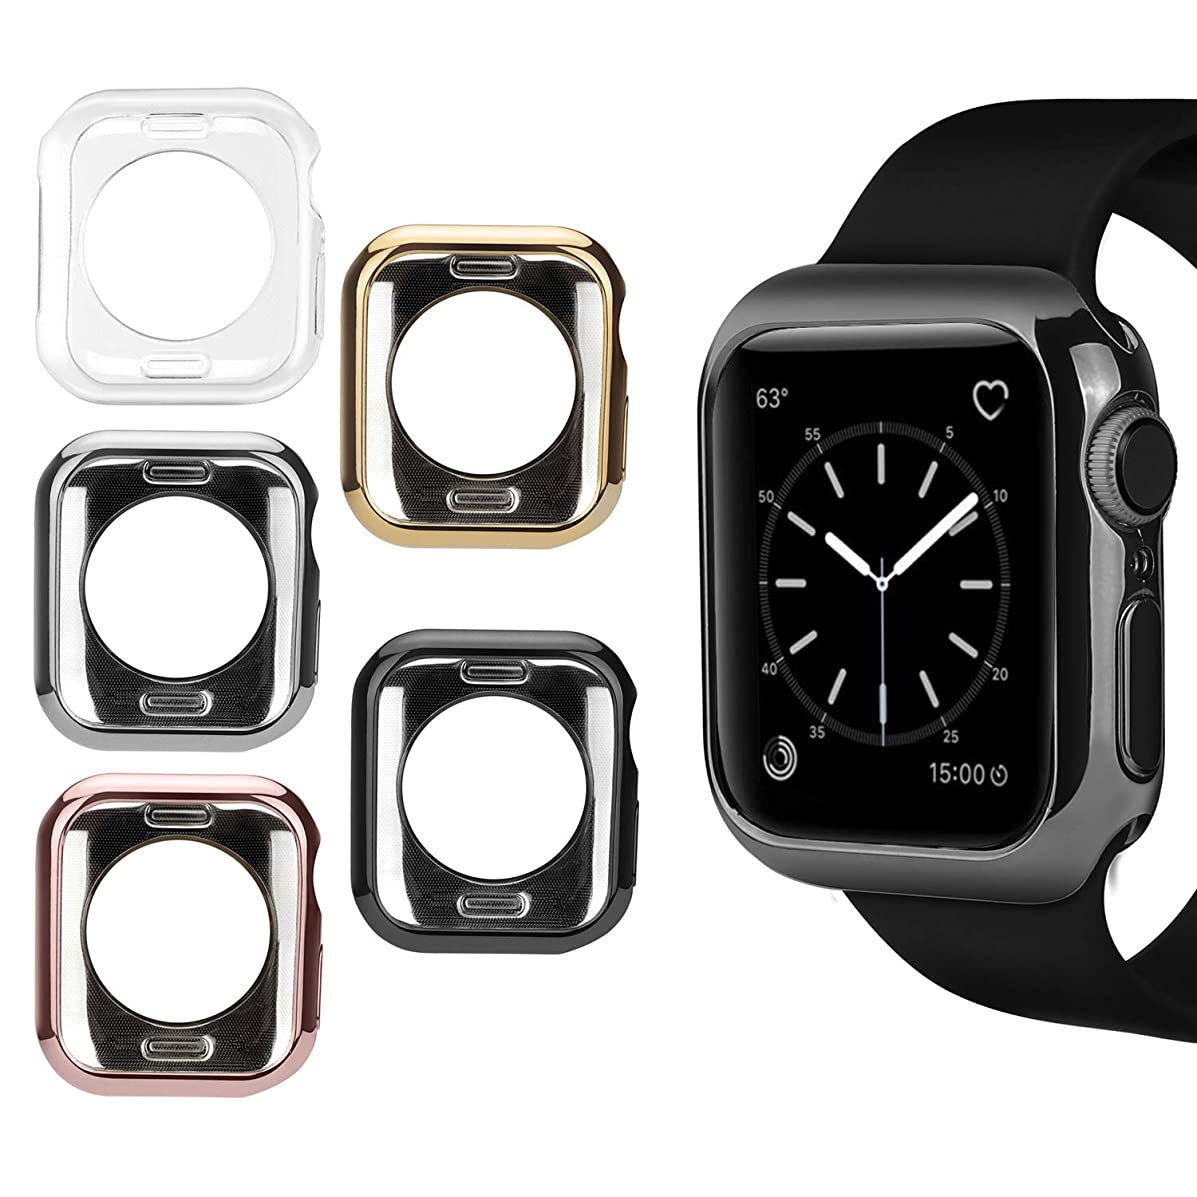 MAIRUI Compatible with Apple Watch Cover Case 40mm [5 Pack], Bumper Guard Protector Accessories Ultra-Slim Lightweight for iWatch Series 4